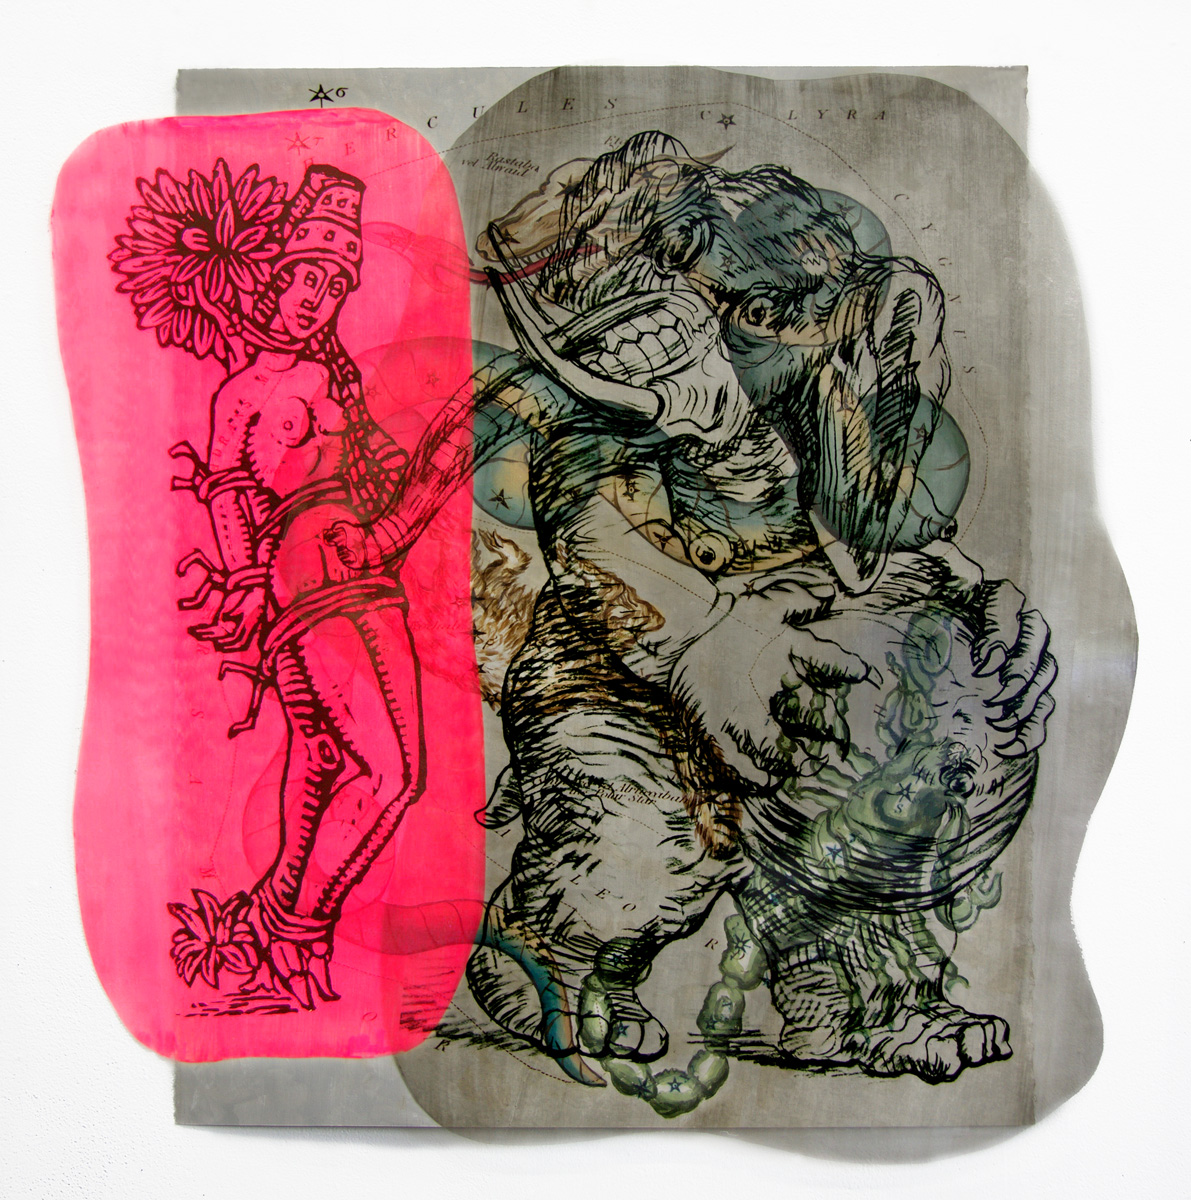 Pamela Joseph WORKS ON PAPER Mixed Media and Acrylic on Acetate and Paper